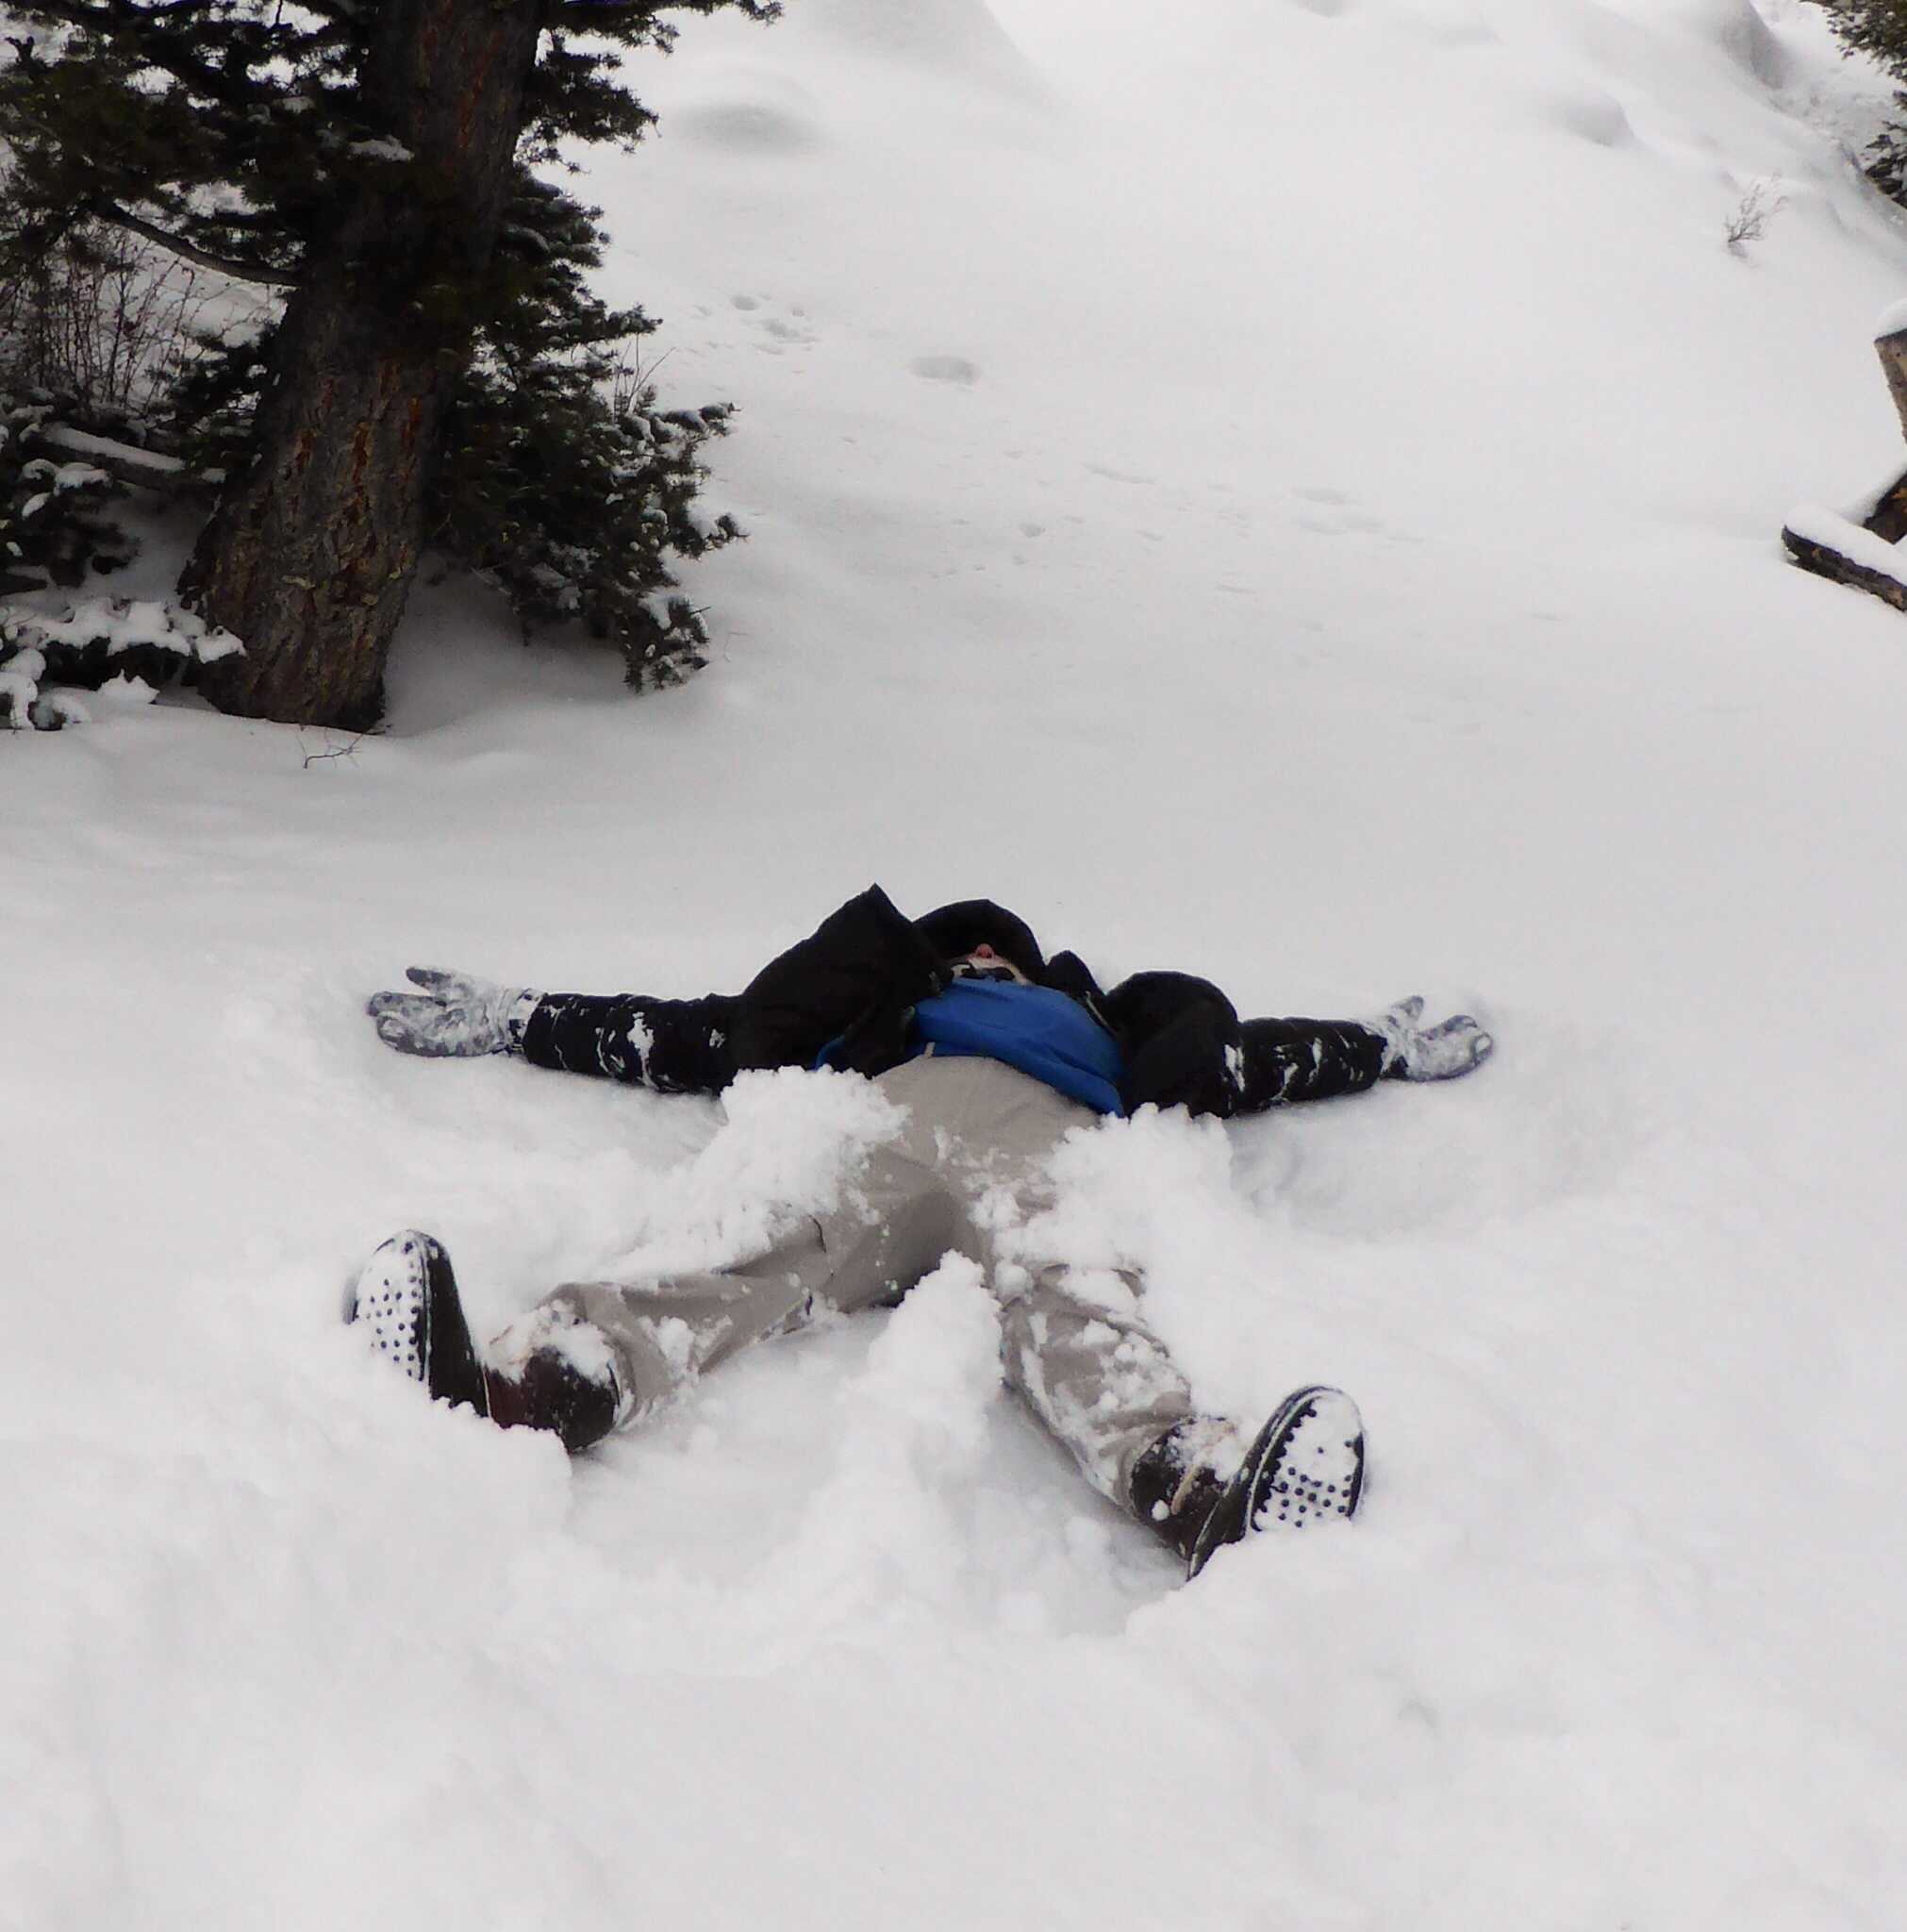 I try to make at least one snow angel per trip. Sometimes the entire group will layout snow angelsin a line, 15 or 16 long. This day it was just me.